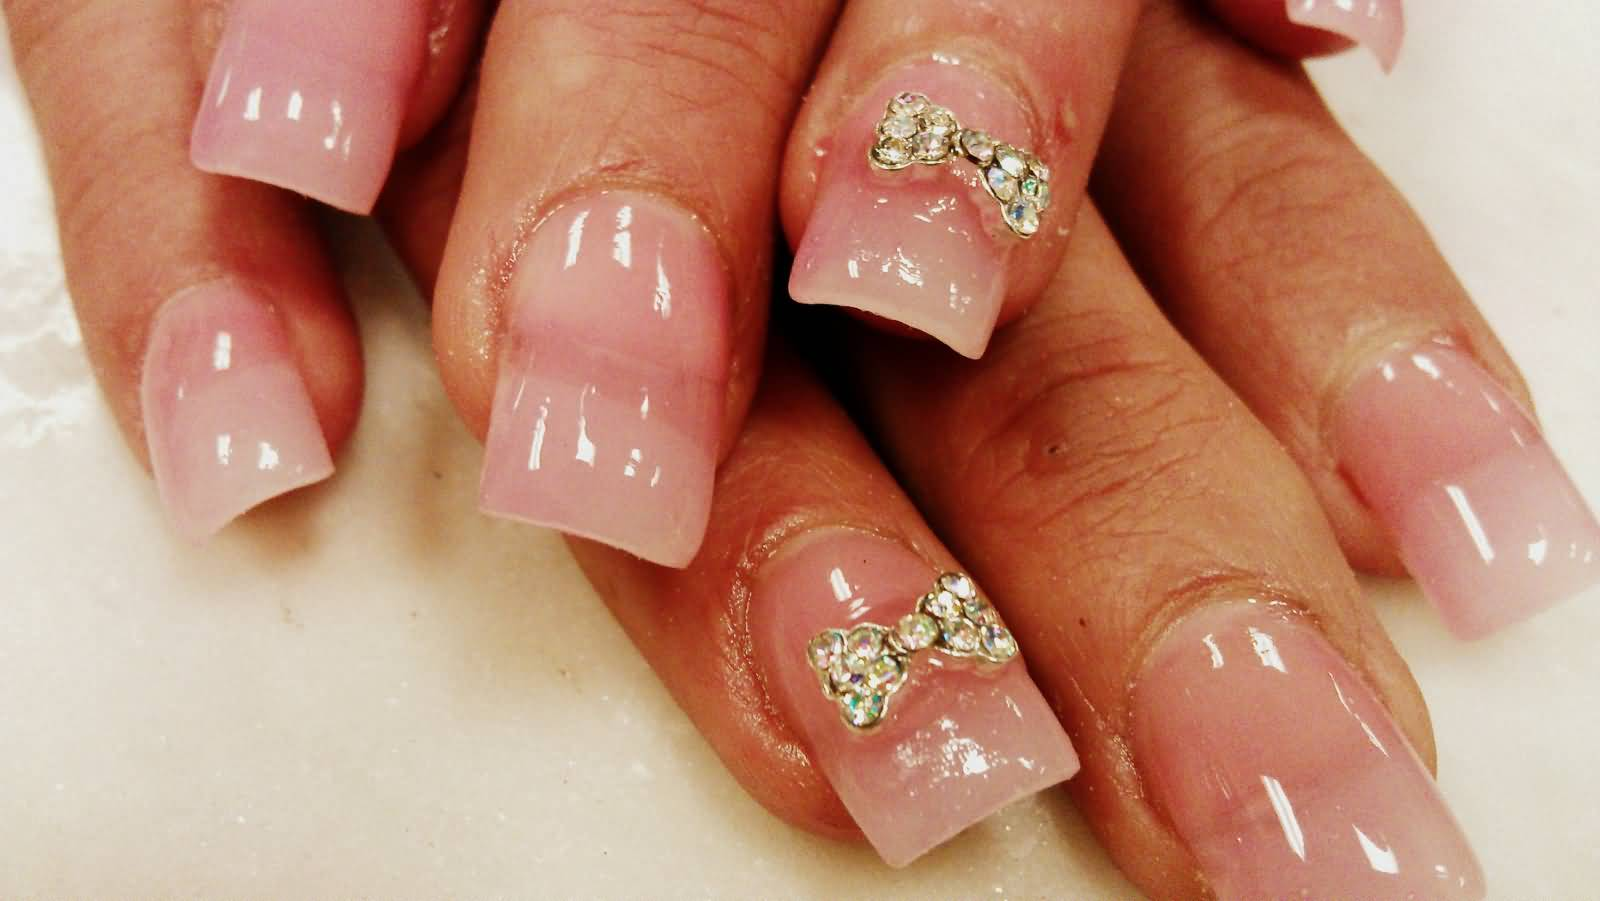 Nail Designs With Bows And Diamonds: Nails designs with diamonds and ...